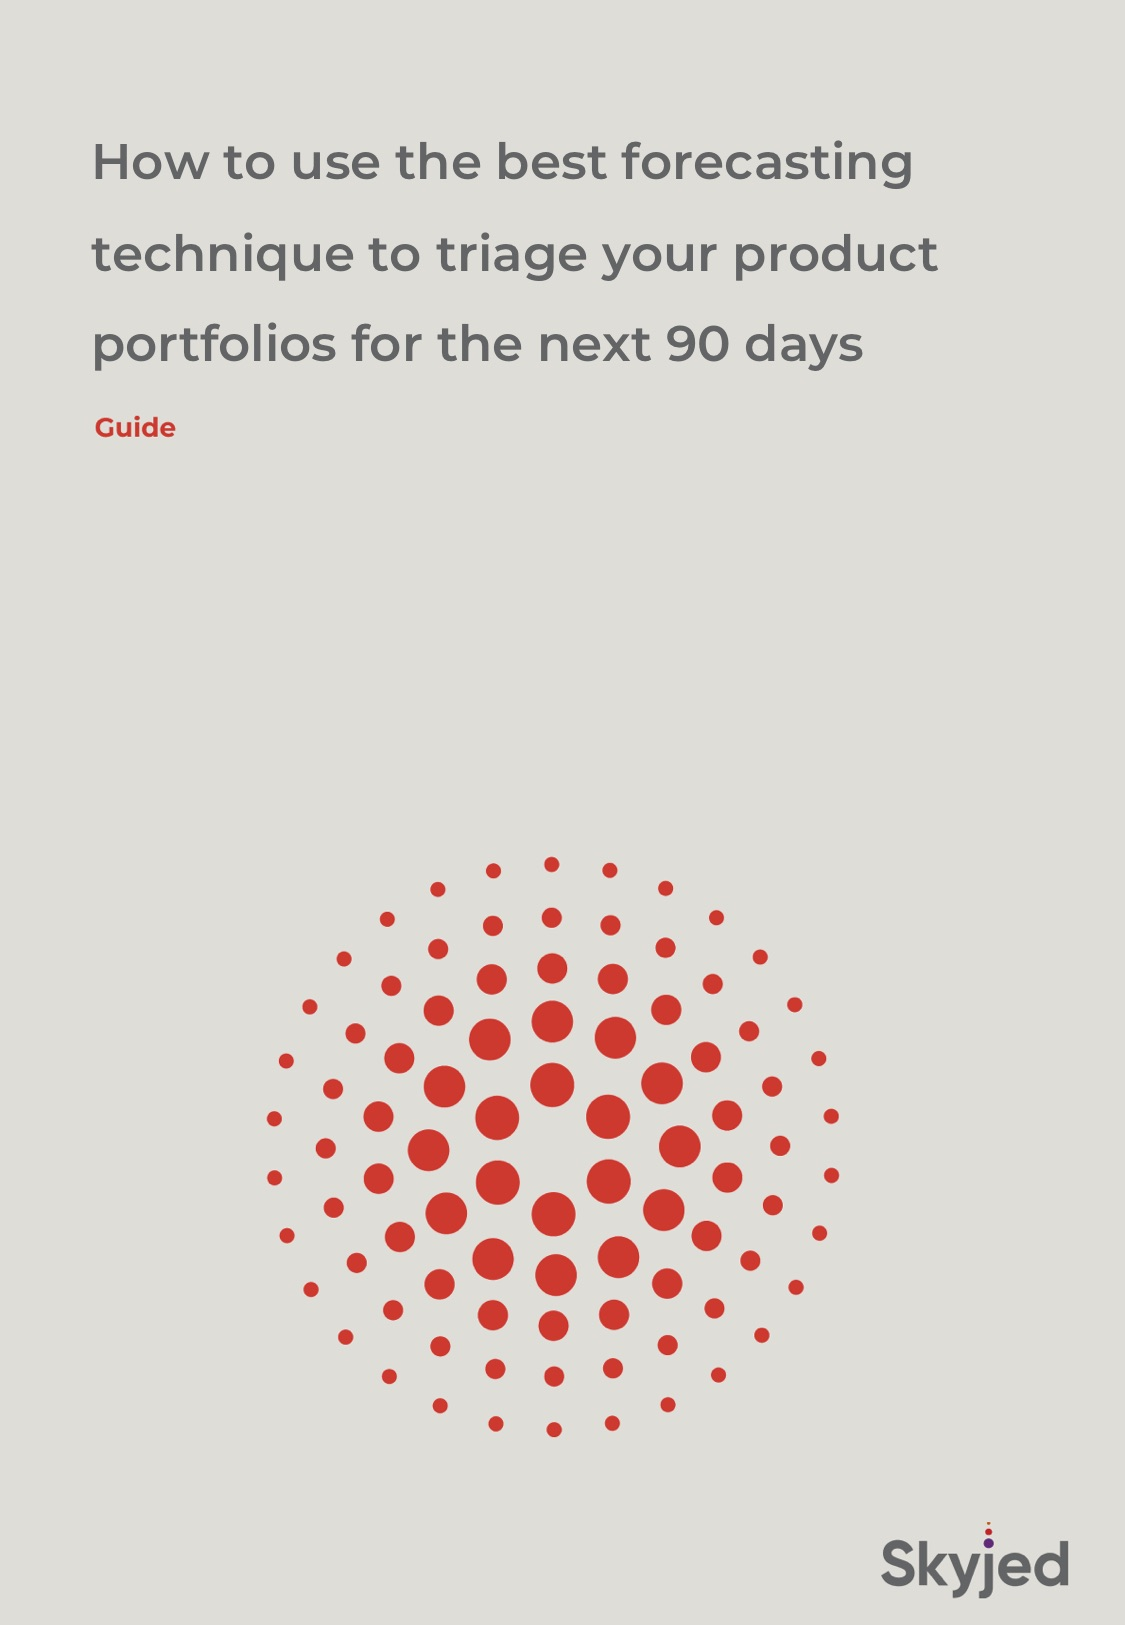 A better way to forecast and triage your product portfolios for the next 90 days